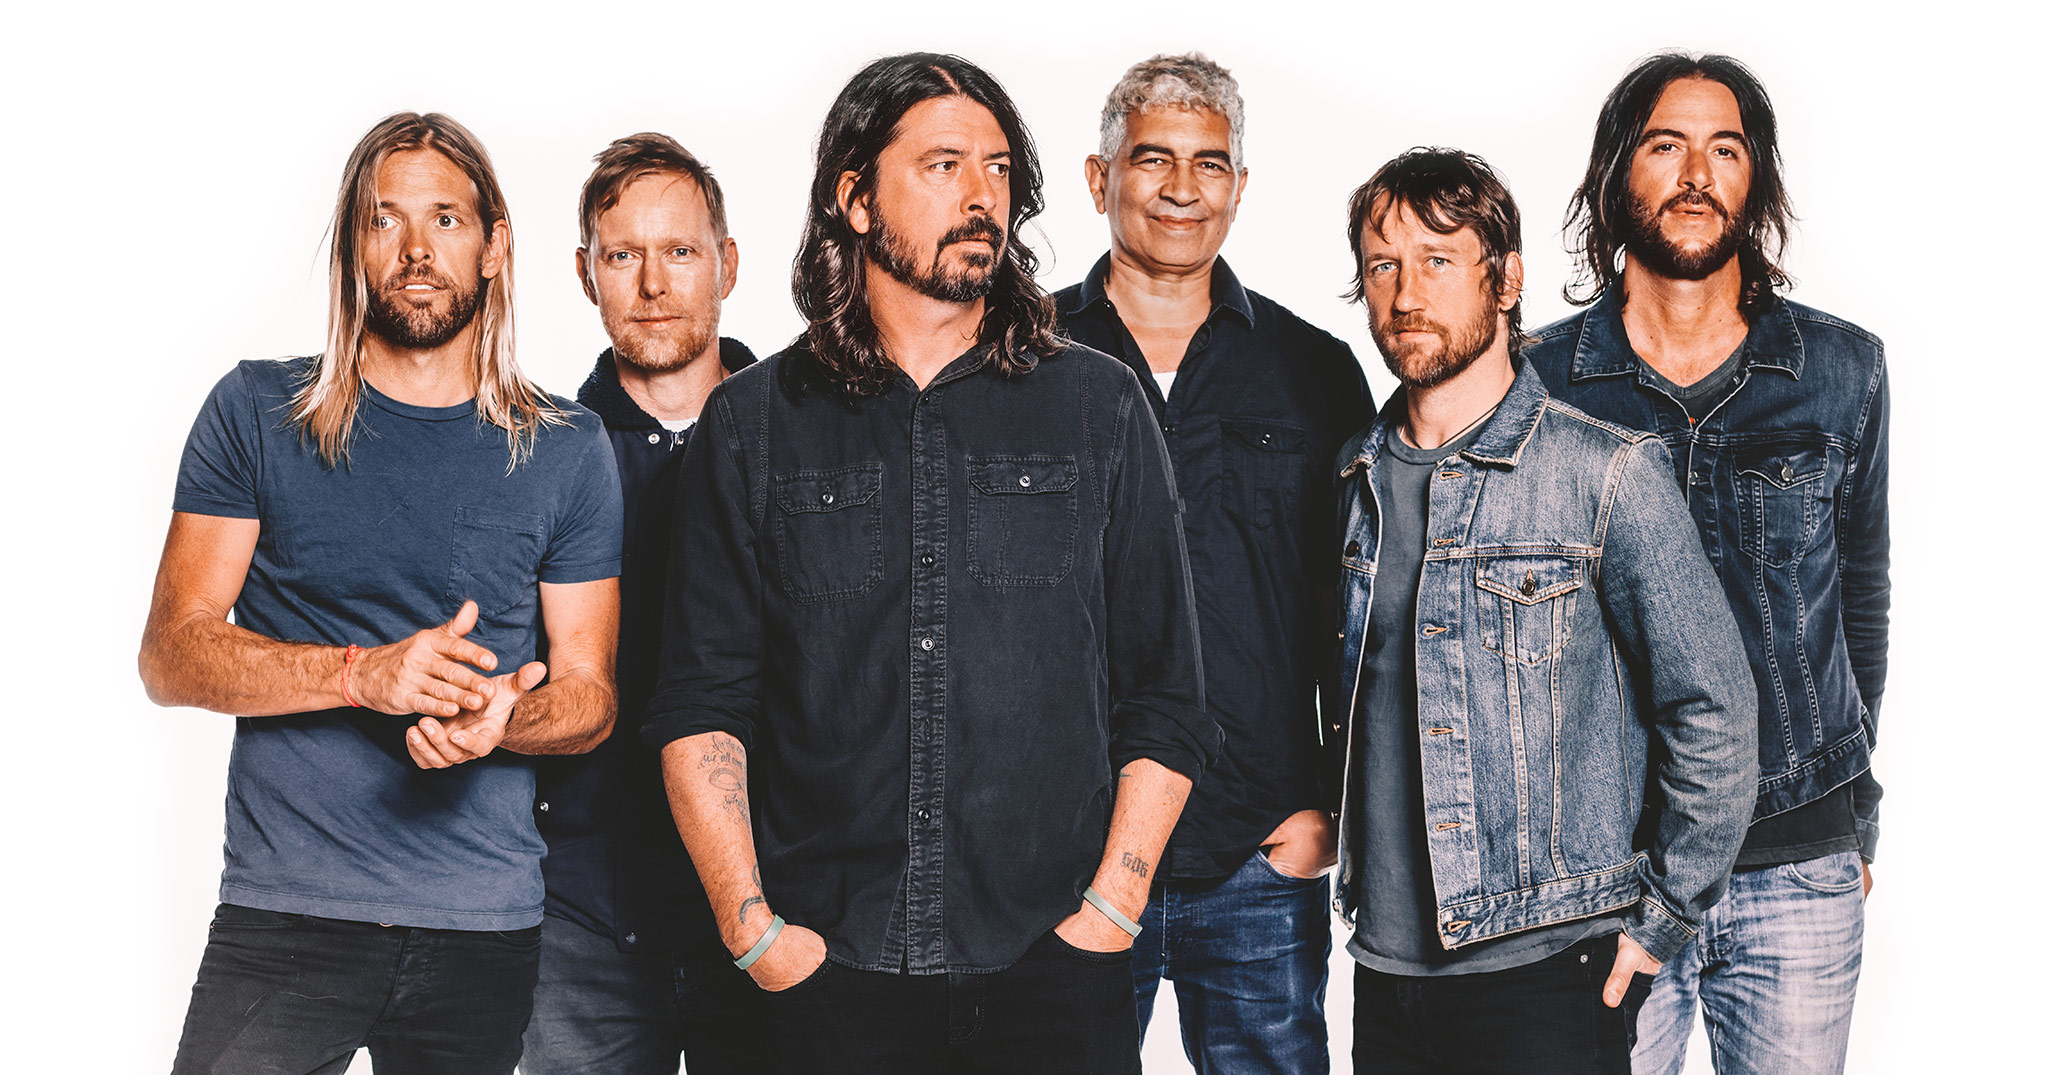 Foo Fighters Promo Image 2017